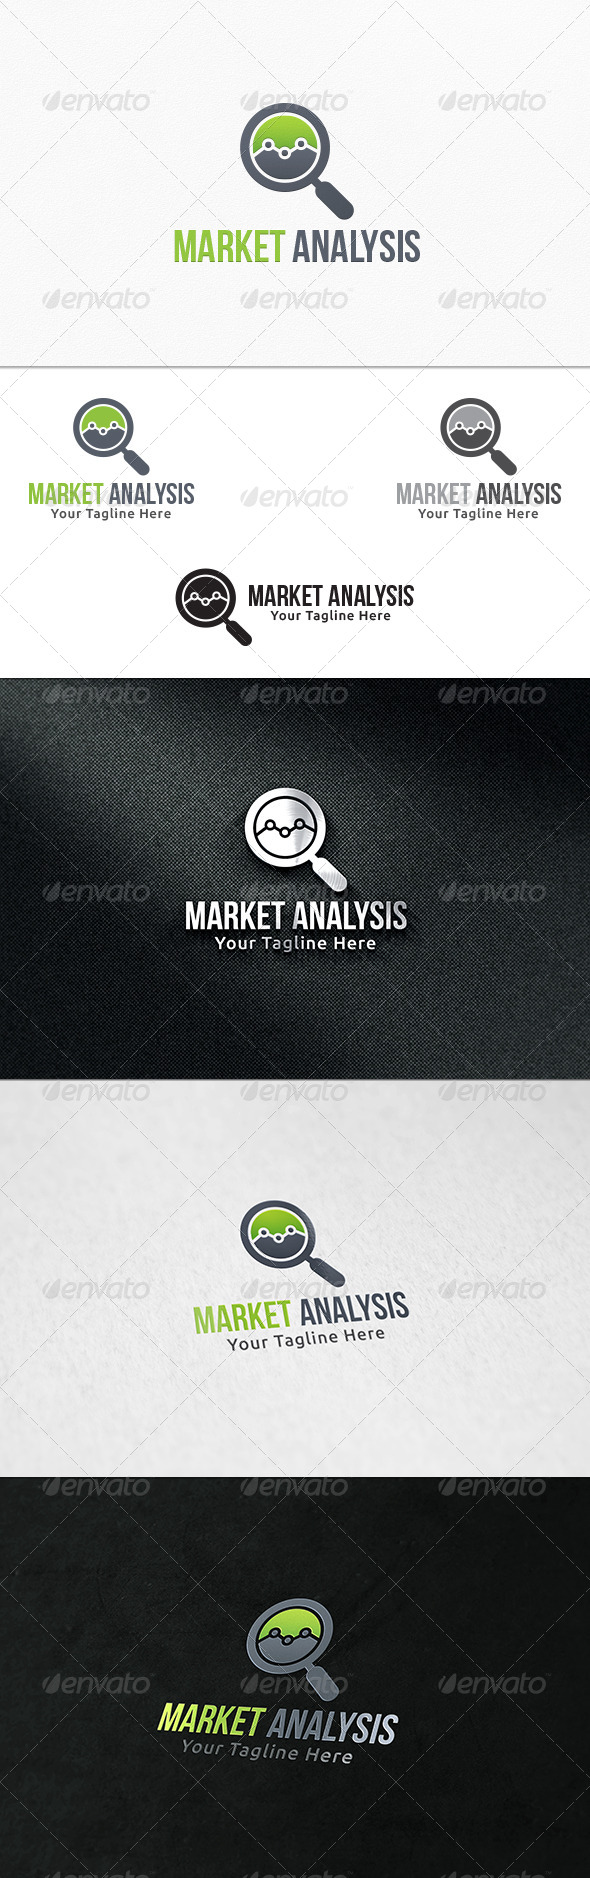 GraphicRiver Market Analysis Logo Template 7941082